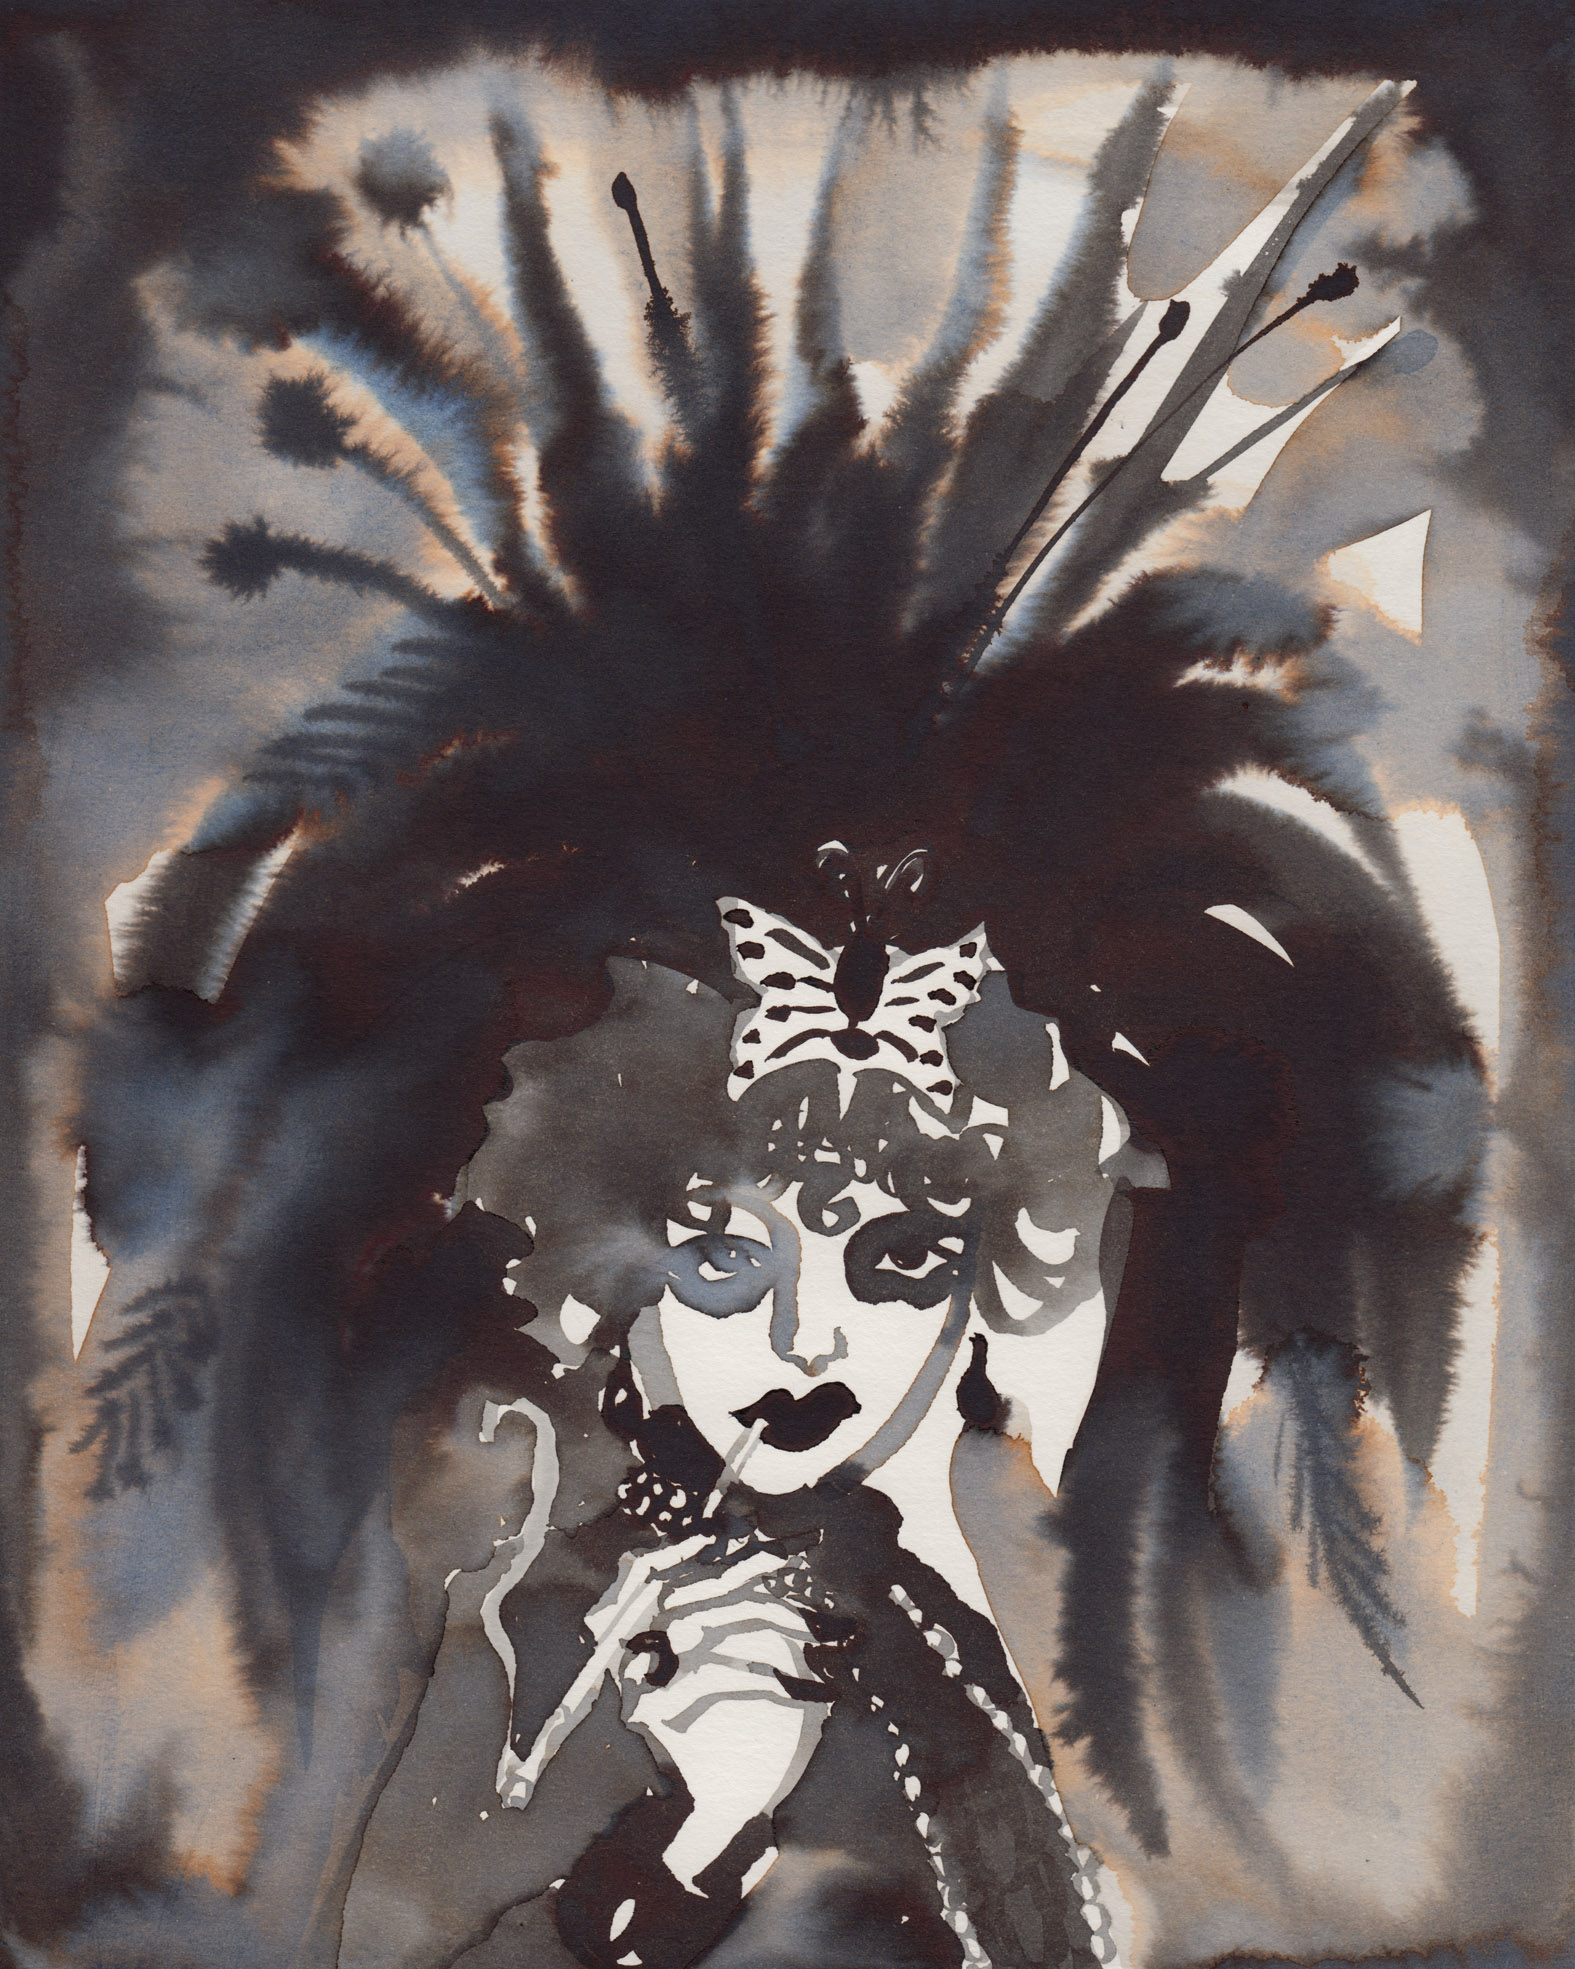 Gill button marisa berenson dressed as marchesa casati courtesy the artist and less is more projects copie original